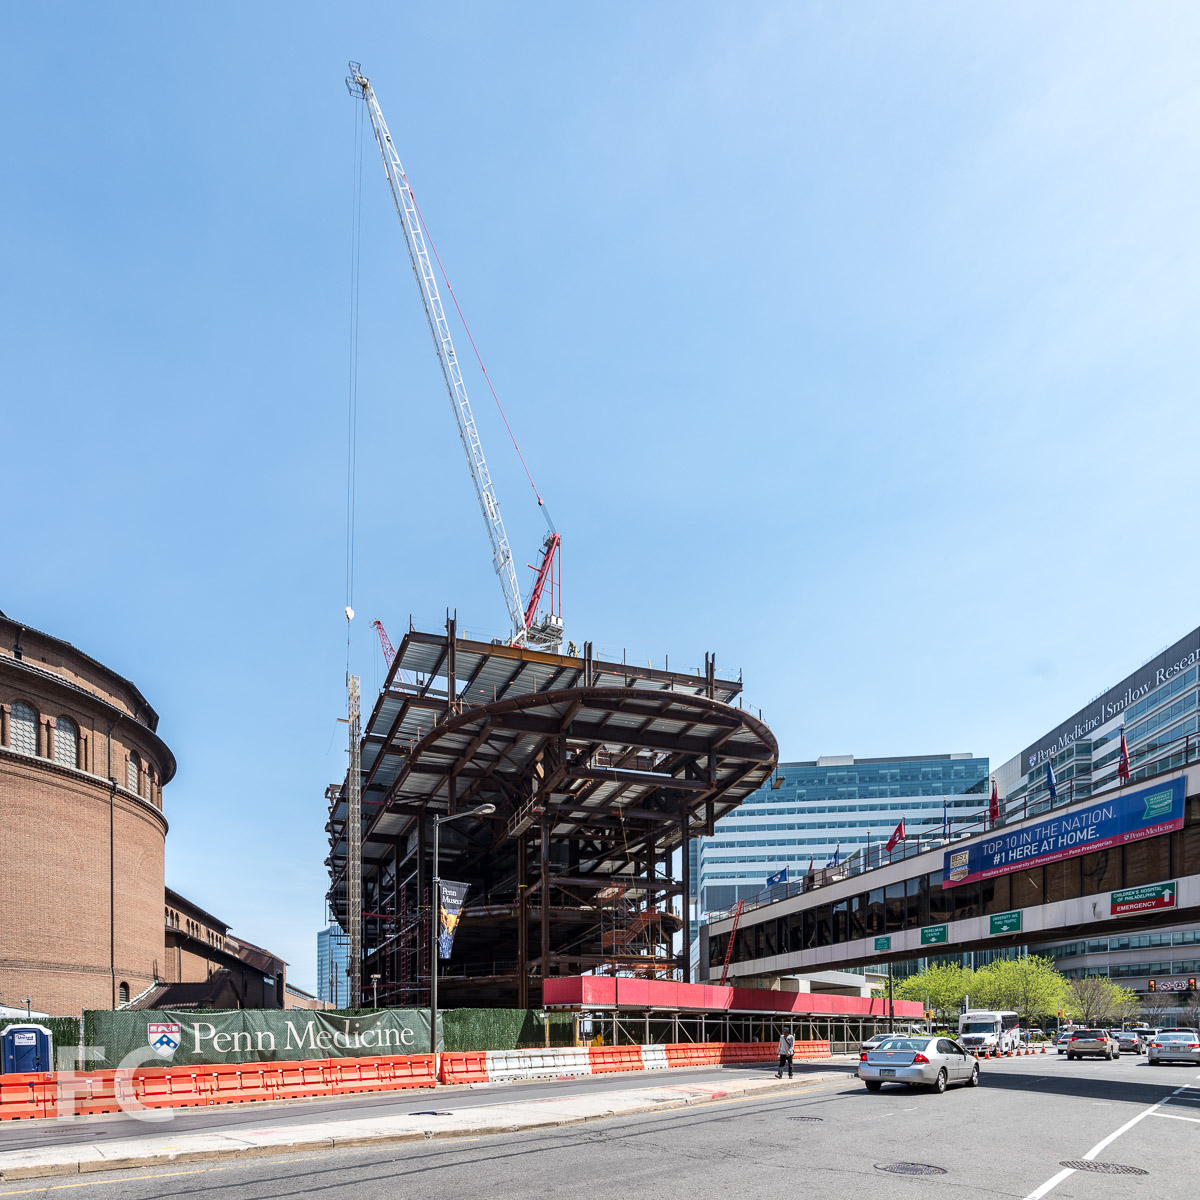 Construction Update: New Patient Pavilion for Penn Medicine — FIELD